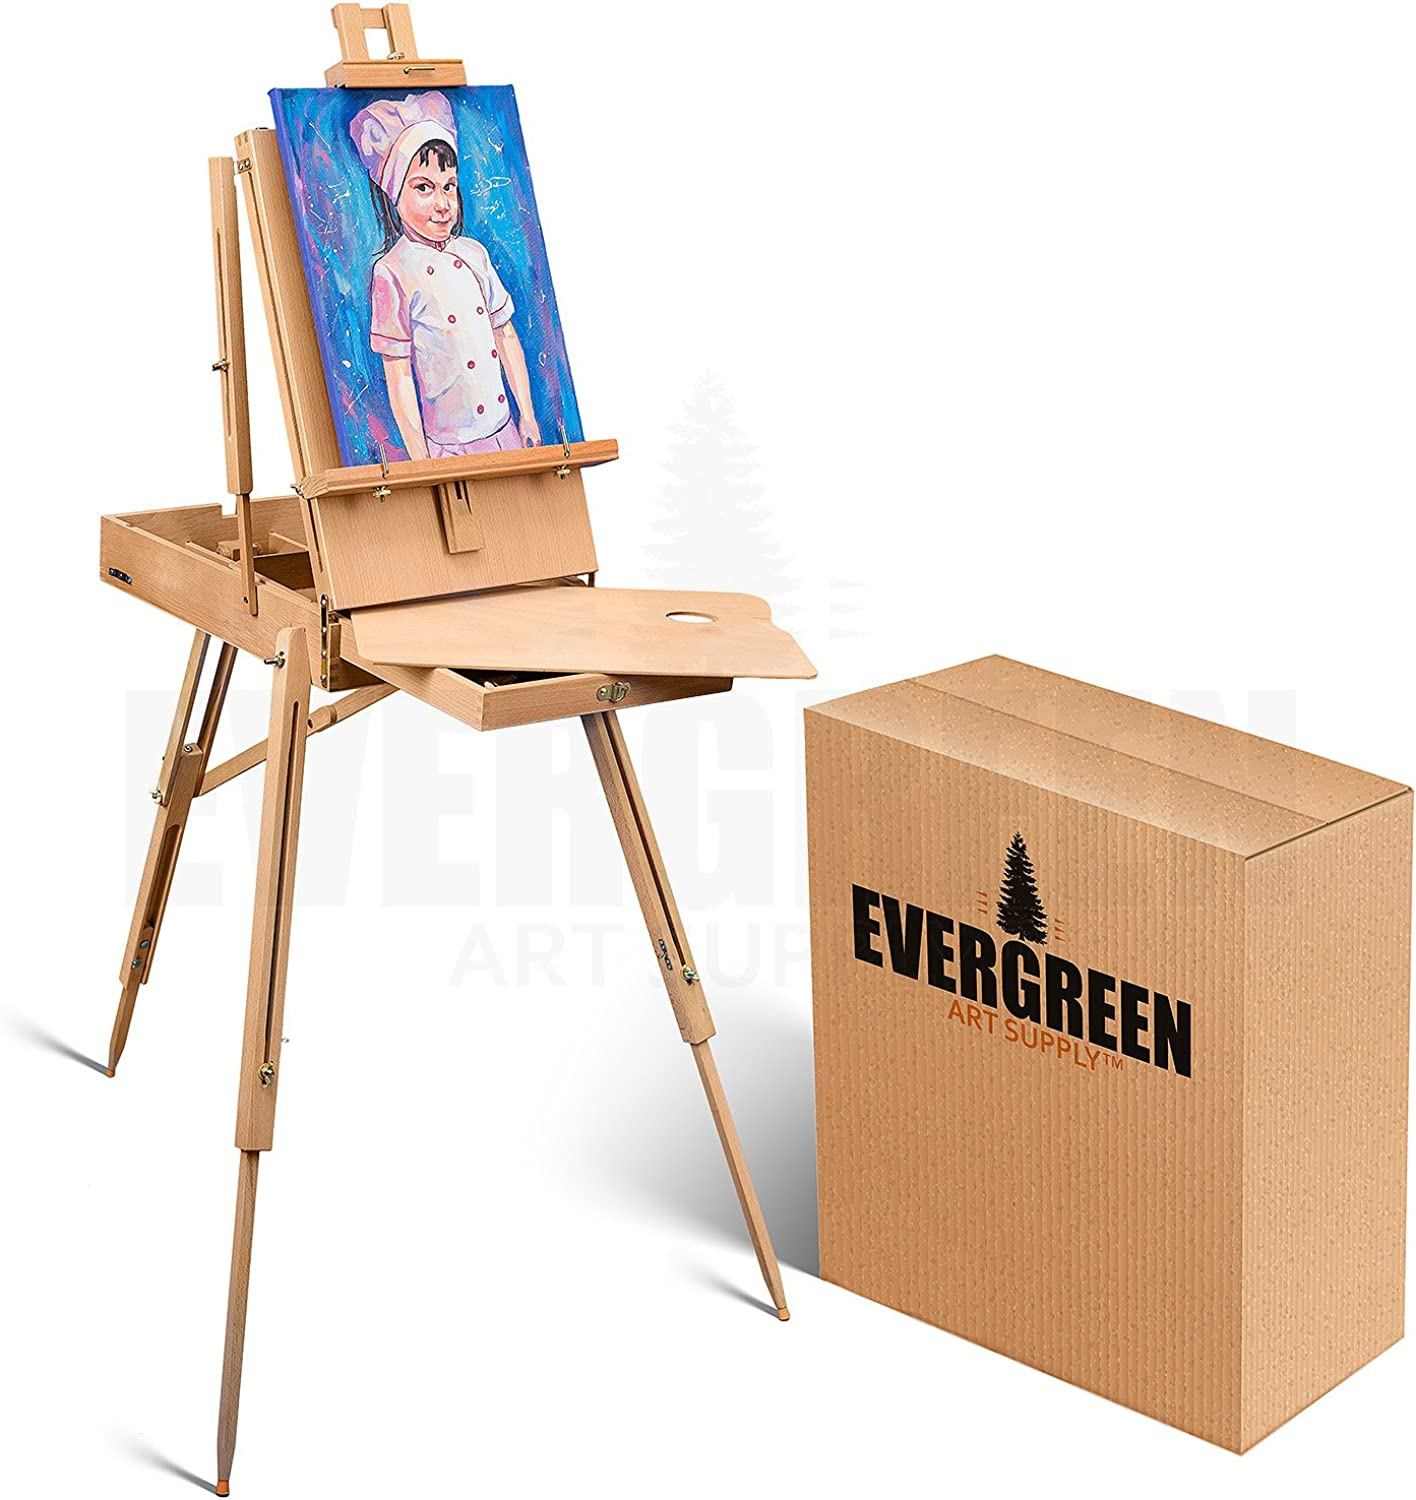 Portable Art Easel for Painting and Drawing - Professional Studio Quality, Adjustable, French Style Wooden Artist Easel with Storage Drawer Sketchbox - Indoor Outdoor Field Easel for Adults